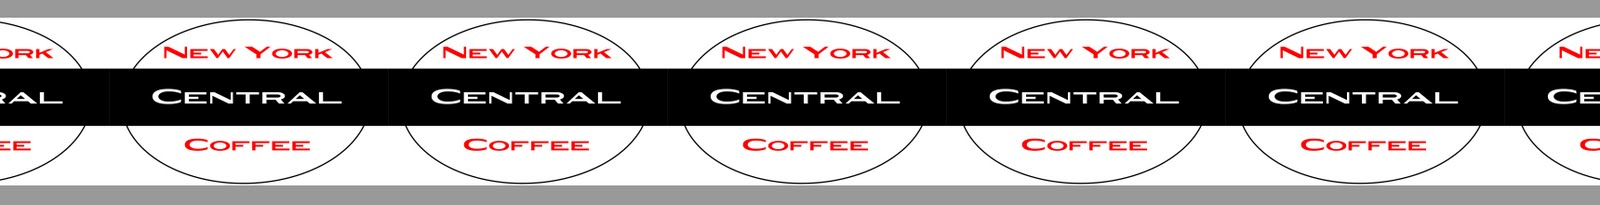 New York Central Coffee Roasters